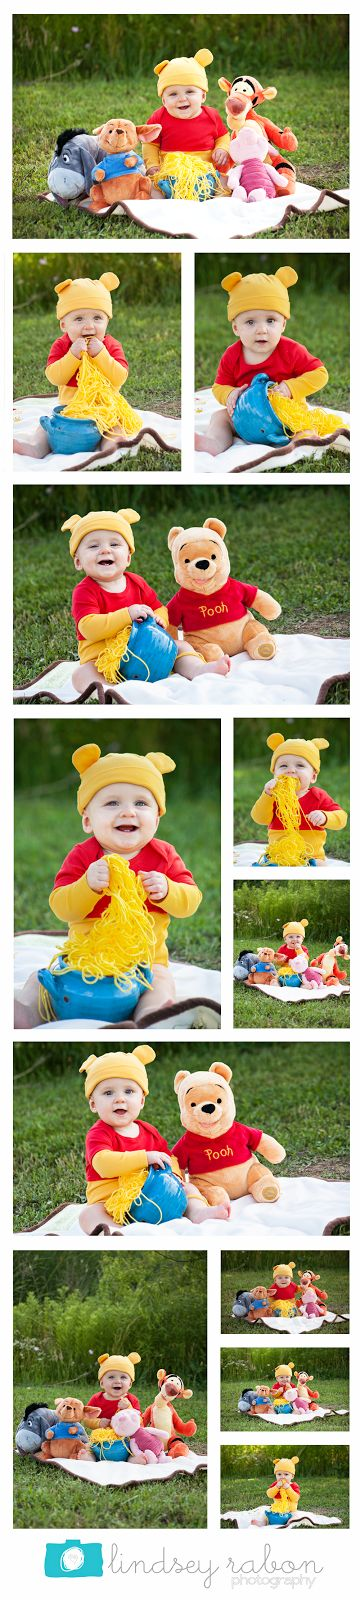 Winnie the Pooh photo shoot | Lindsey Rabon Photography. Baby photos, 9 month, pooh, boy, outdoor portraits, stylizized